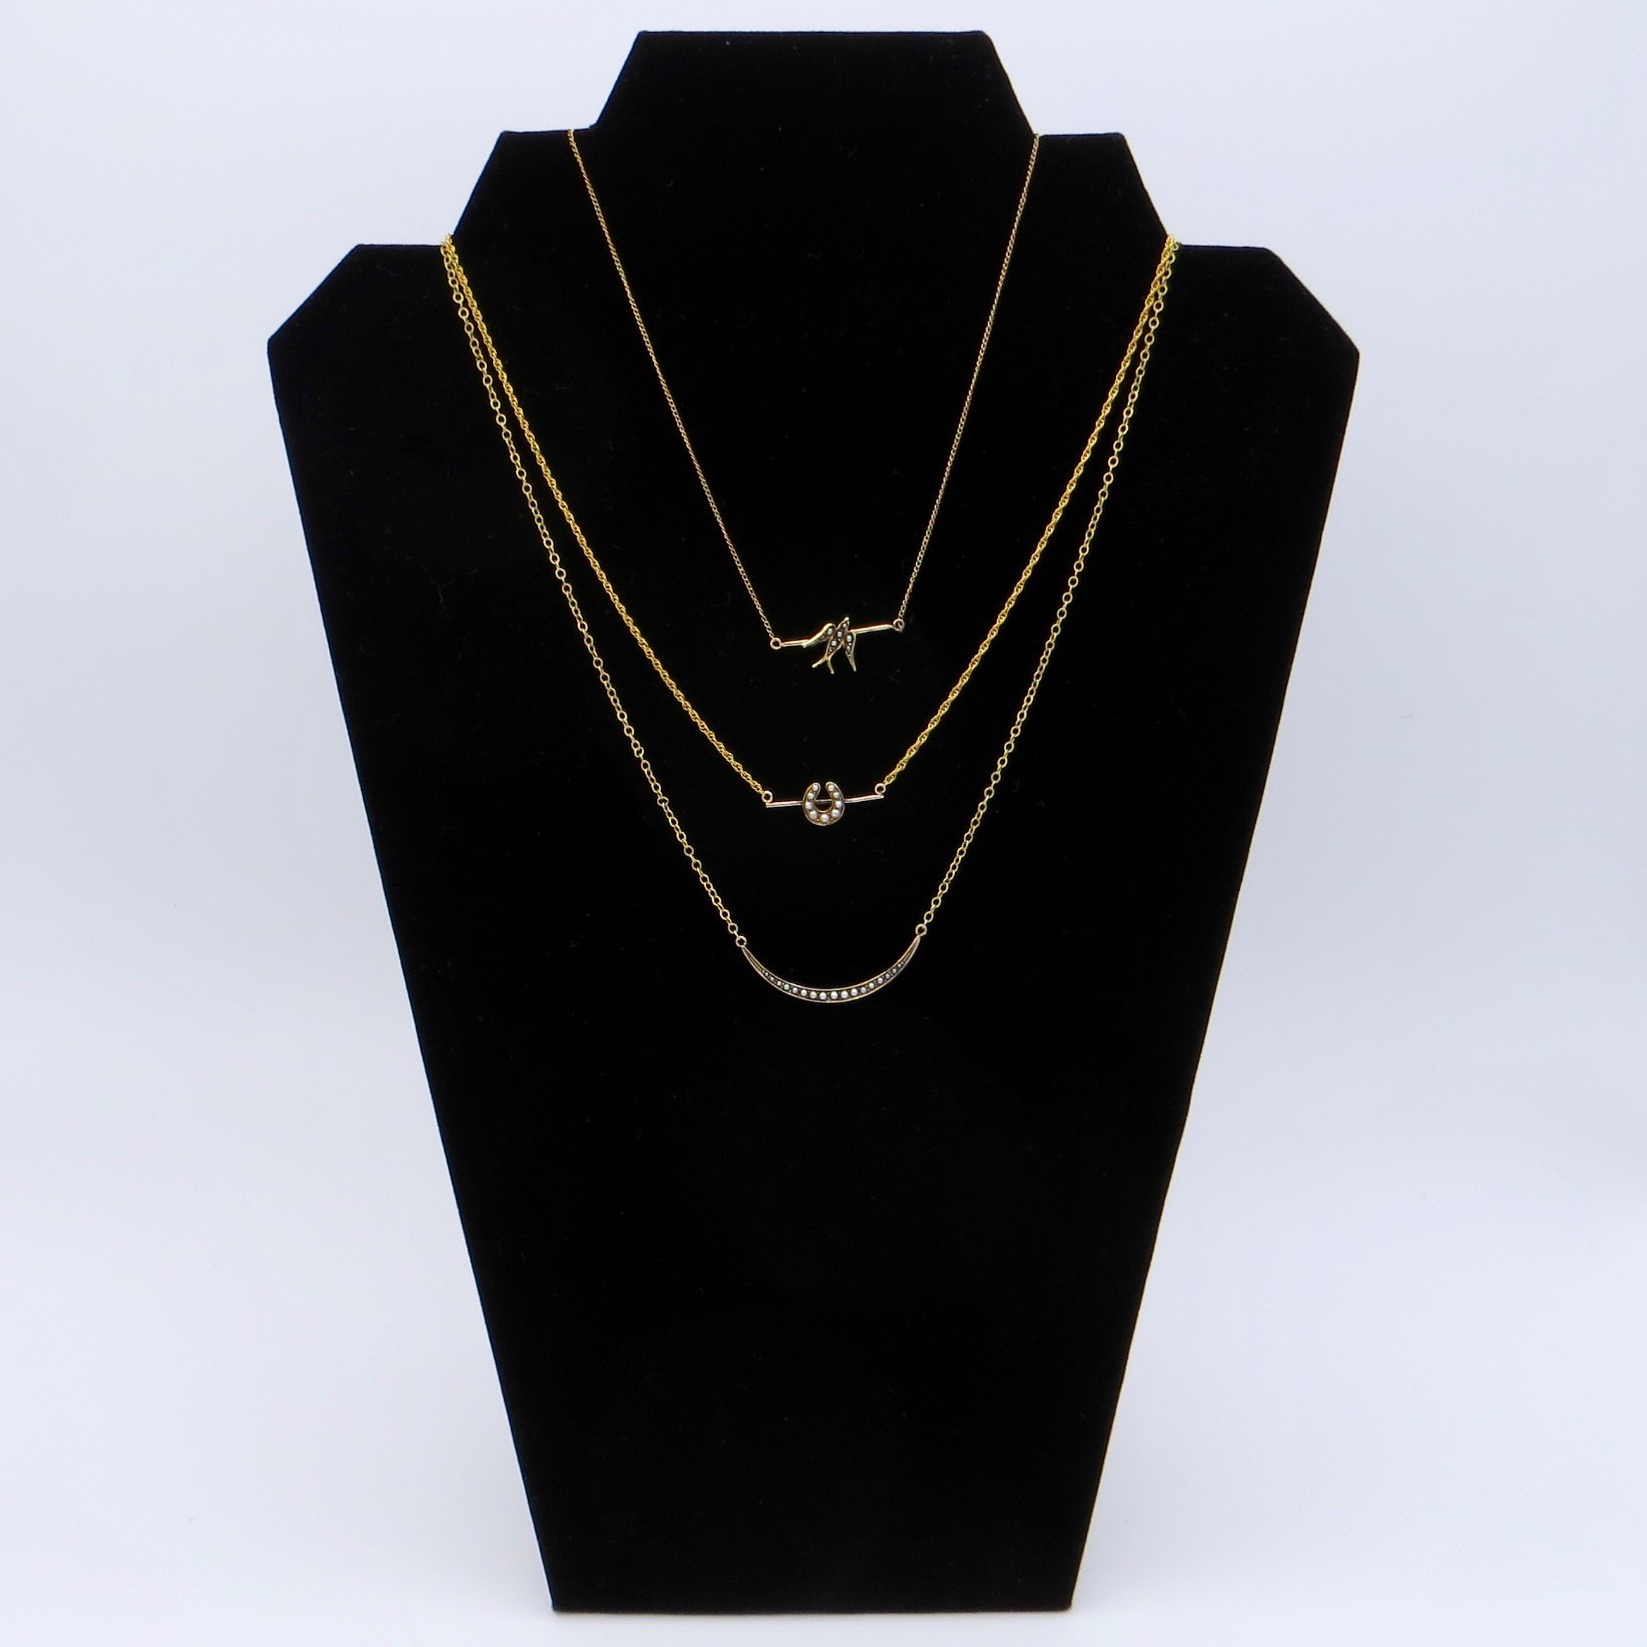 10kt Gold & Pearl Horseshoe Necklace (GF Chain)